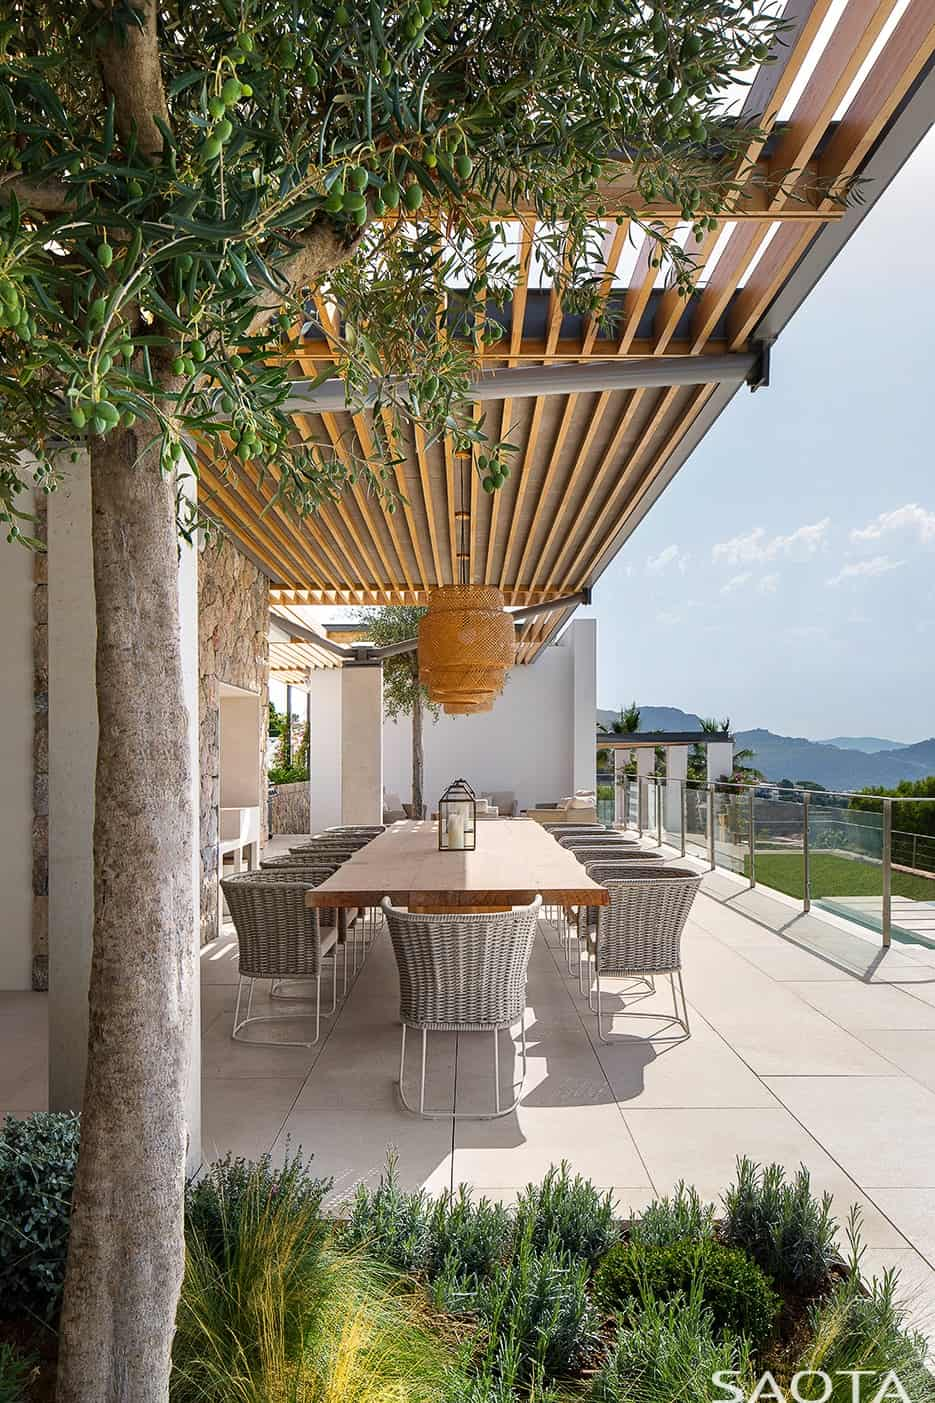 The outdoor dining can be a perfect spot for lunch. Photo by Adam Letch / Architecture by Rys Architects / Interior design by ARRCC and Rys Architects / Lighting design by Lux Populi / Landscaping by Cracknell